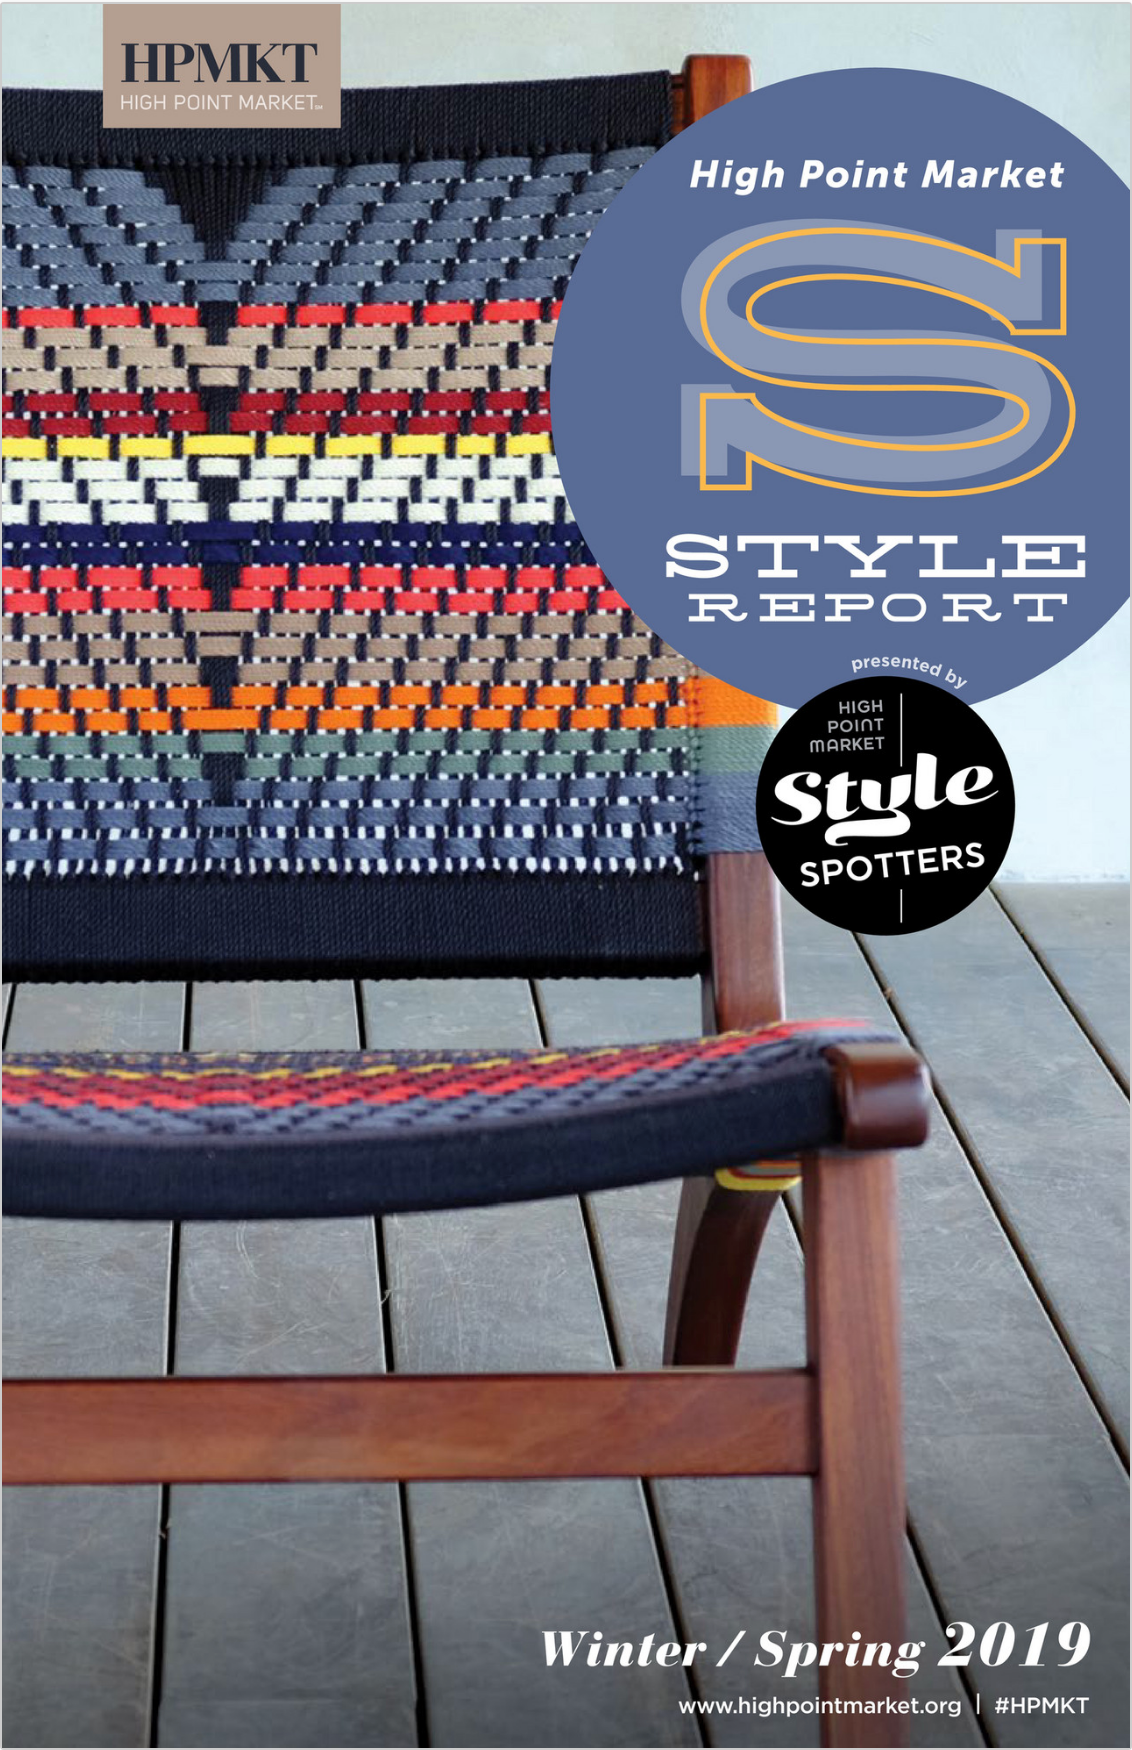 high point market style report magazine cover for spring 2019